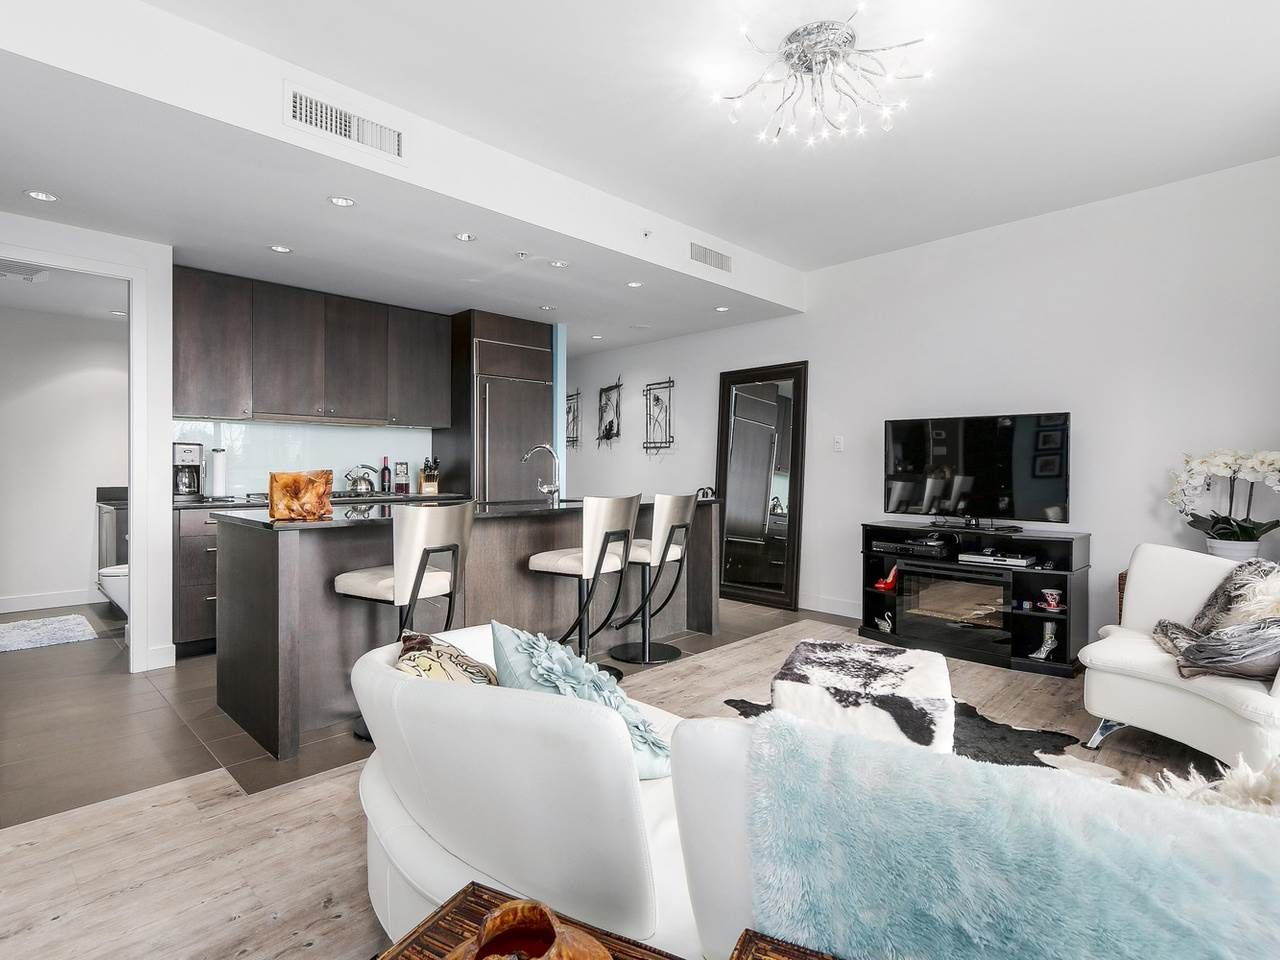 Photo 4: Photos: 401 1455 HOWE STREET in Vancouver: Yaletown Condo for sale (Vancouver West)  : MLS®# R2145939